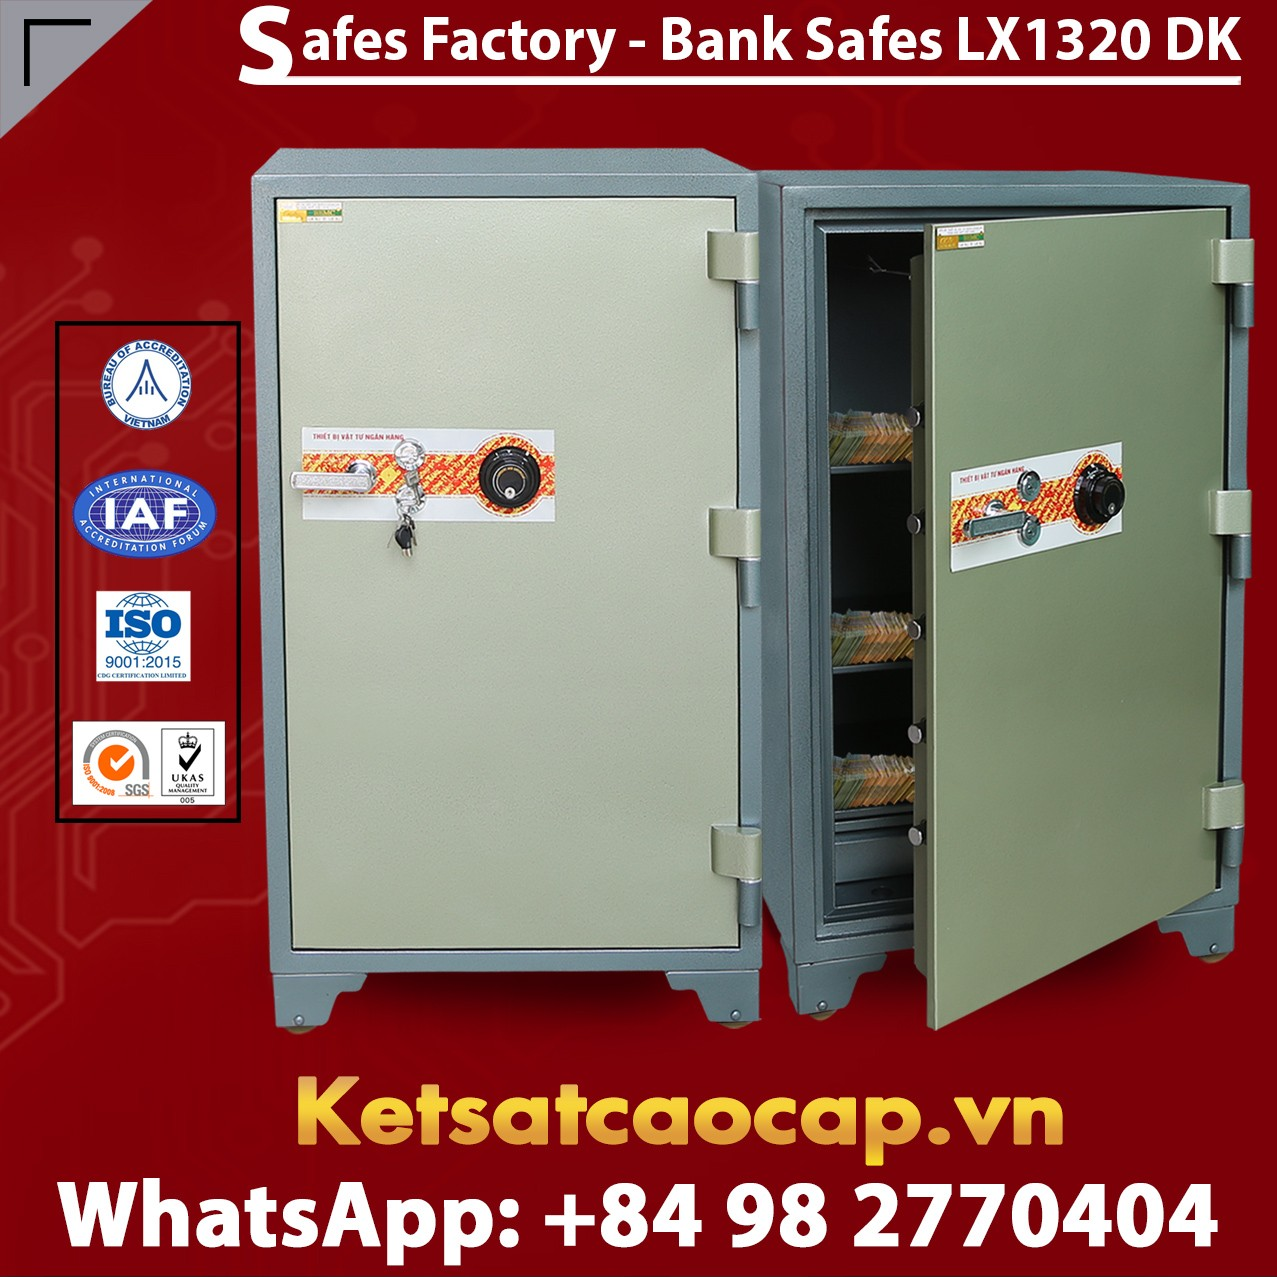 Bank Safes LX1320 DK No.1 Bank Safes Maker Mordern Design From WELKO